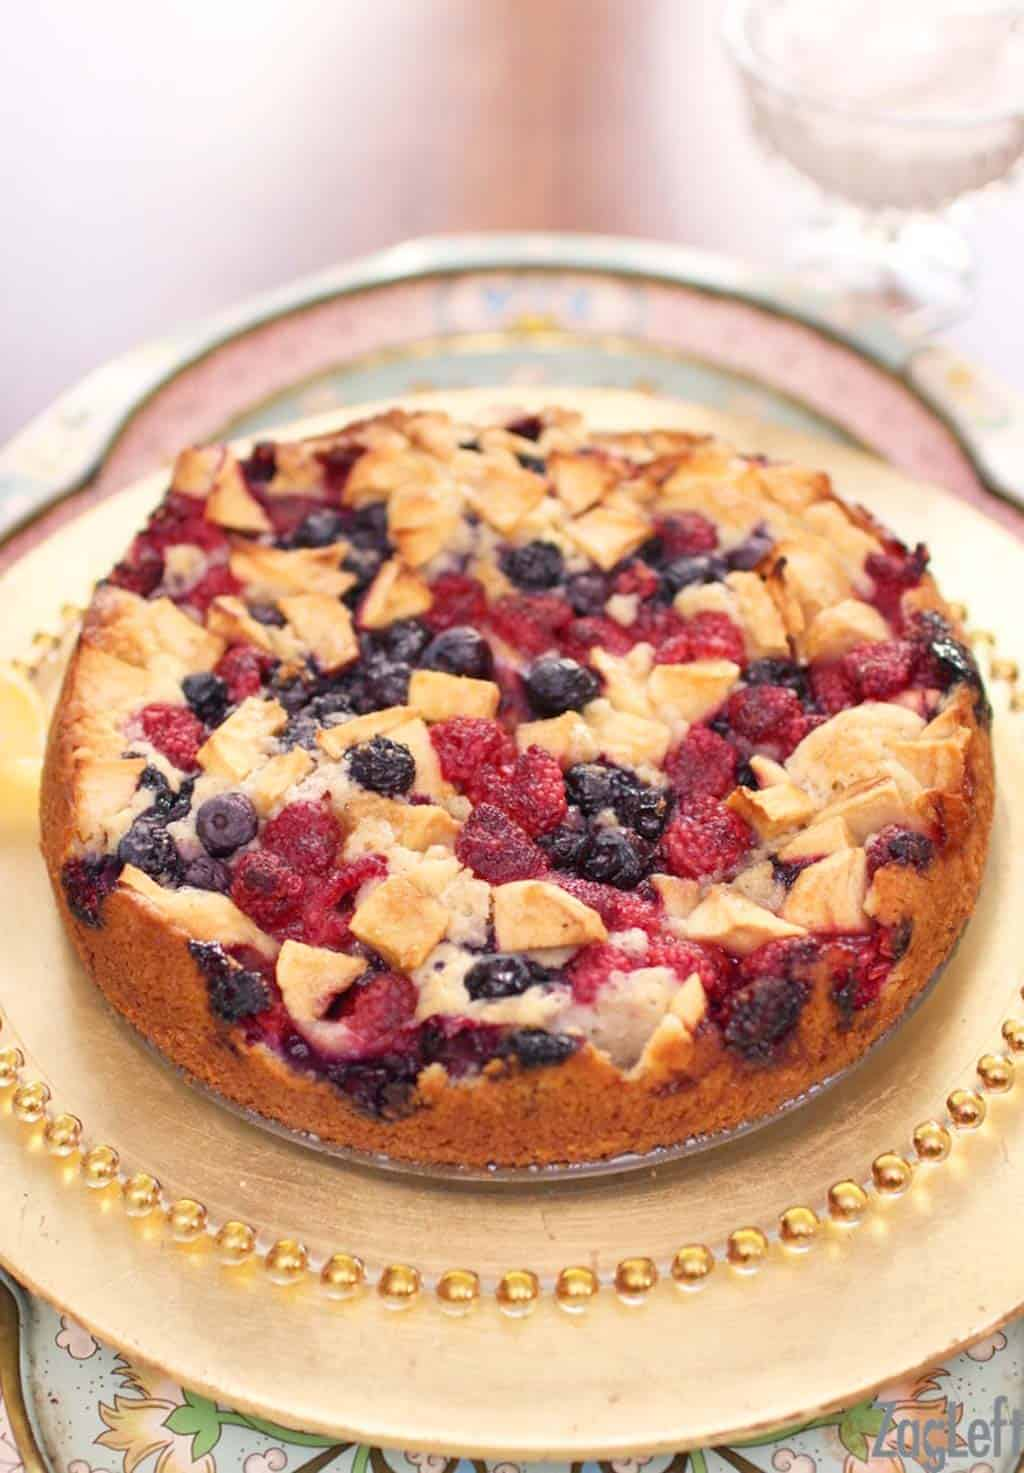 Delicious Apple Berry Coffee Cake topped with blueberries, raspberries and apples... | www.zagleft.com